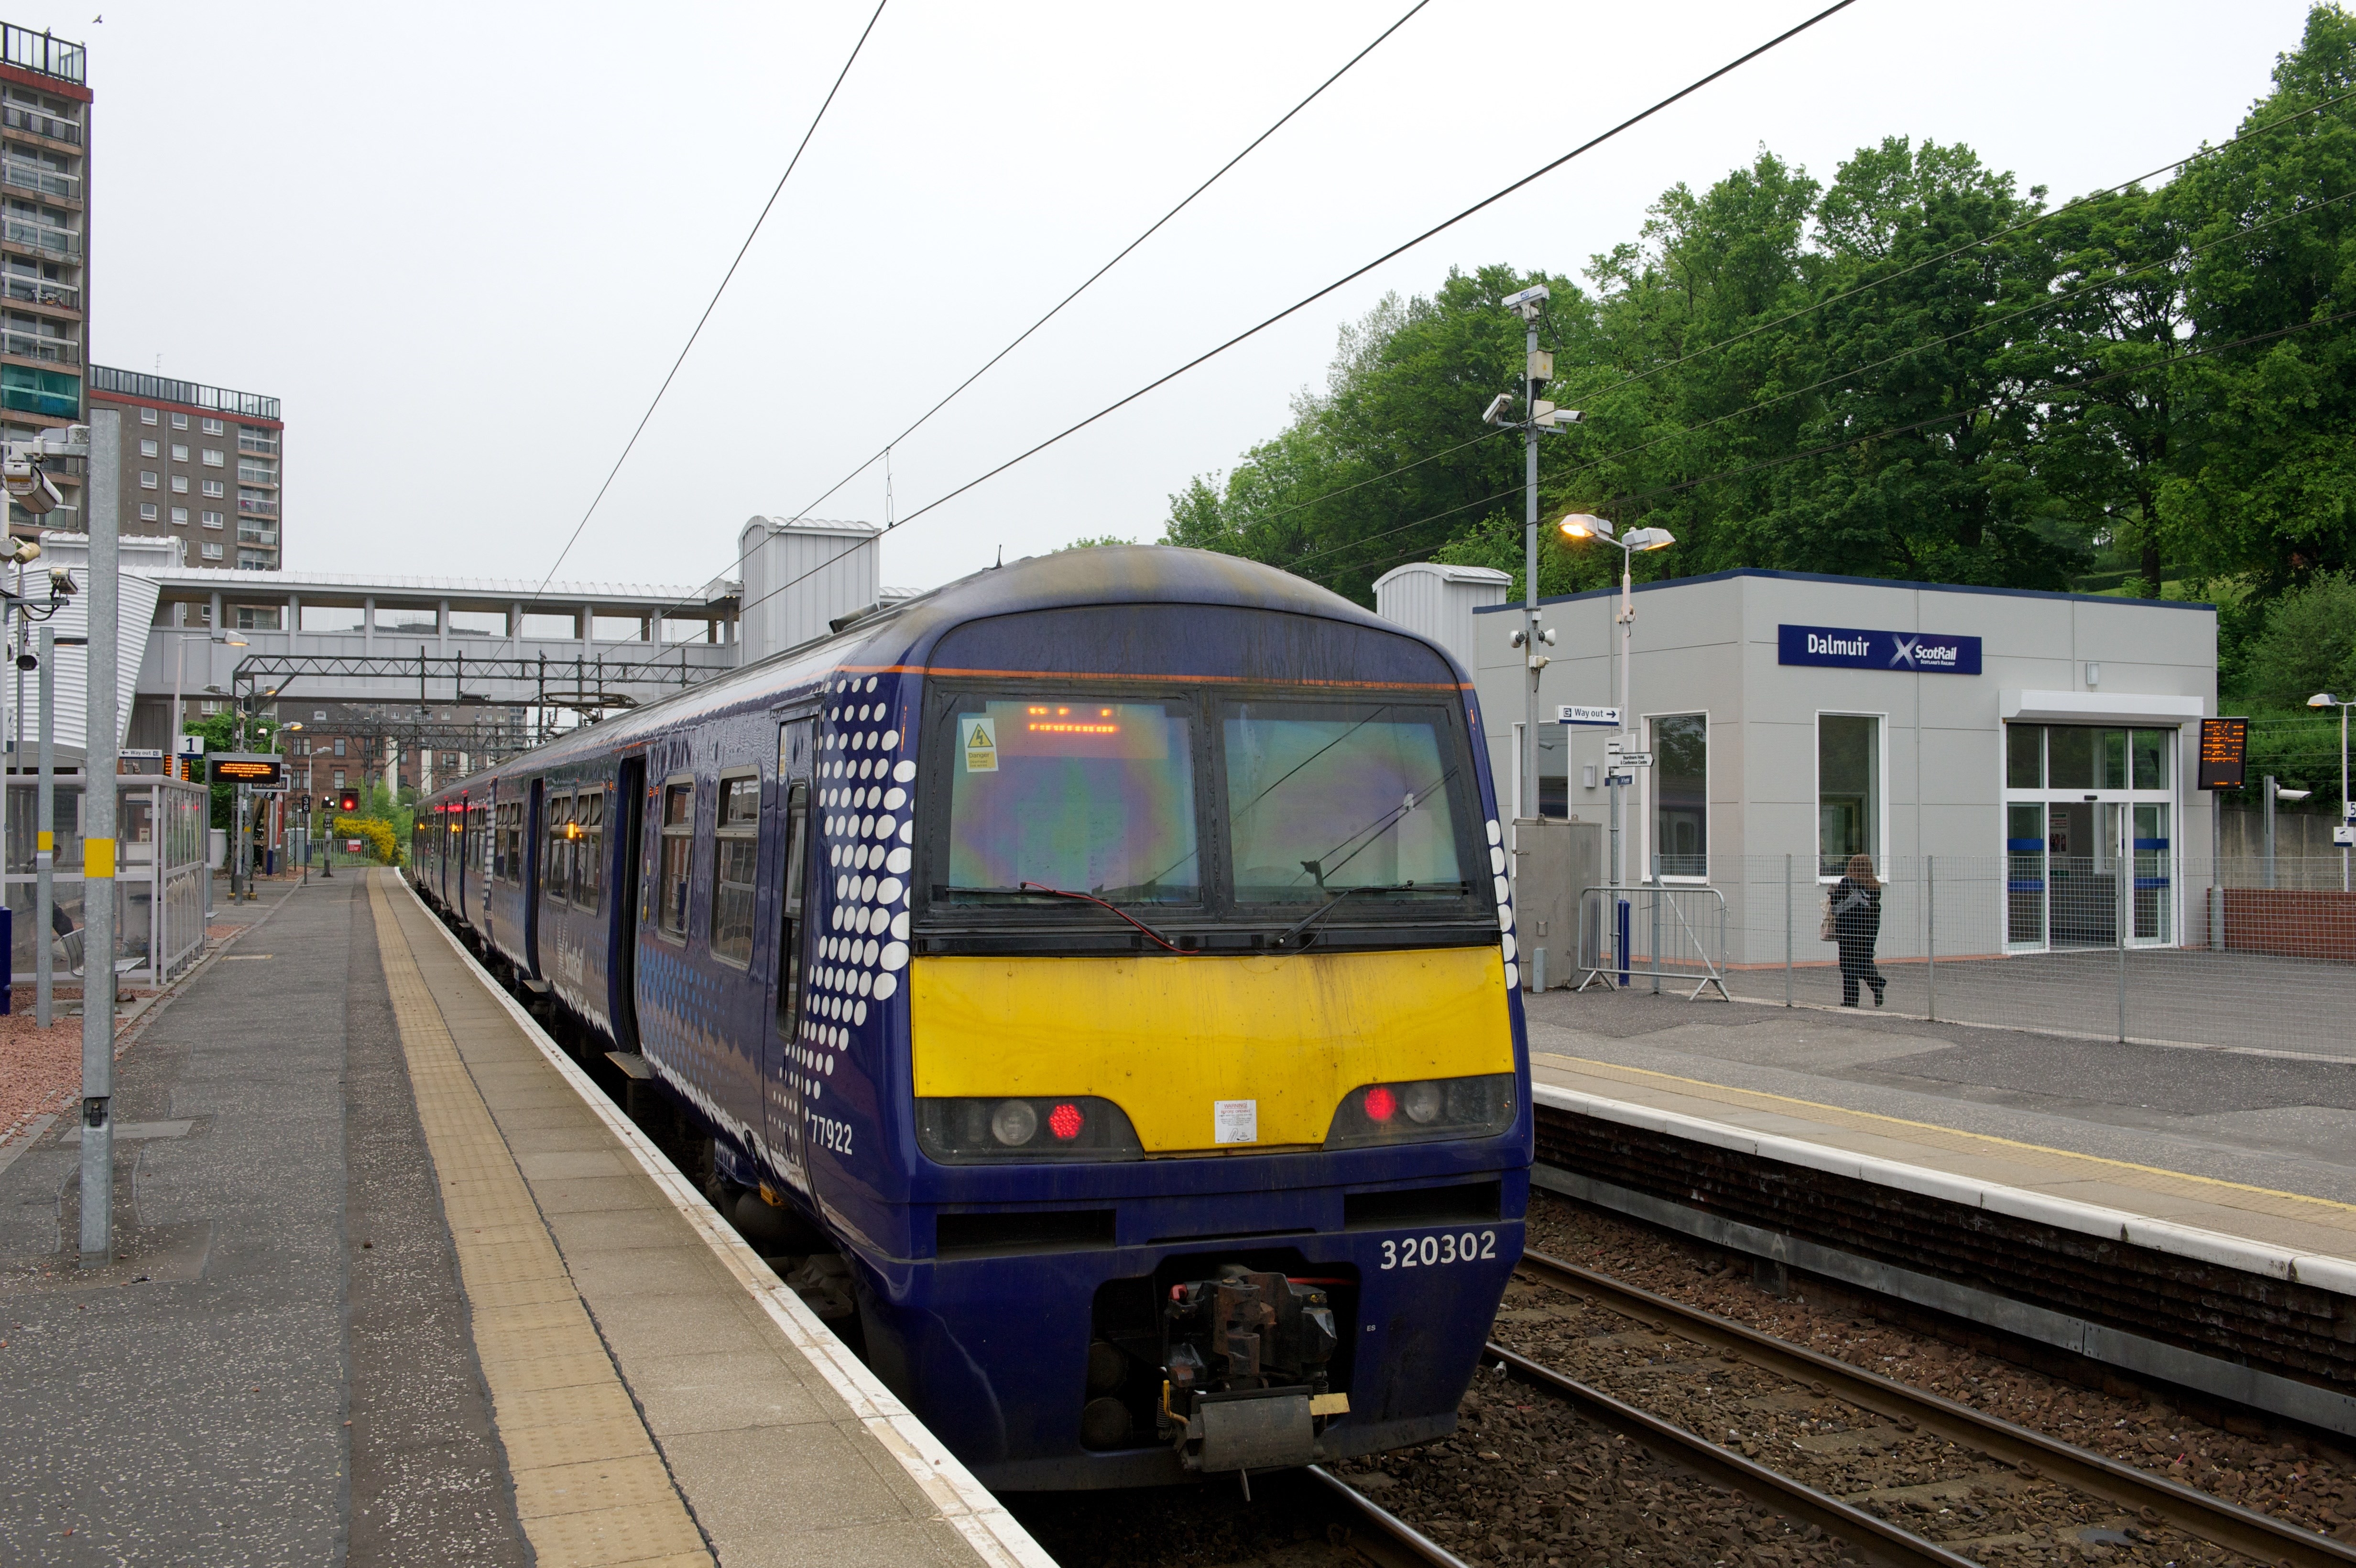 Dalmuir Station